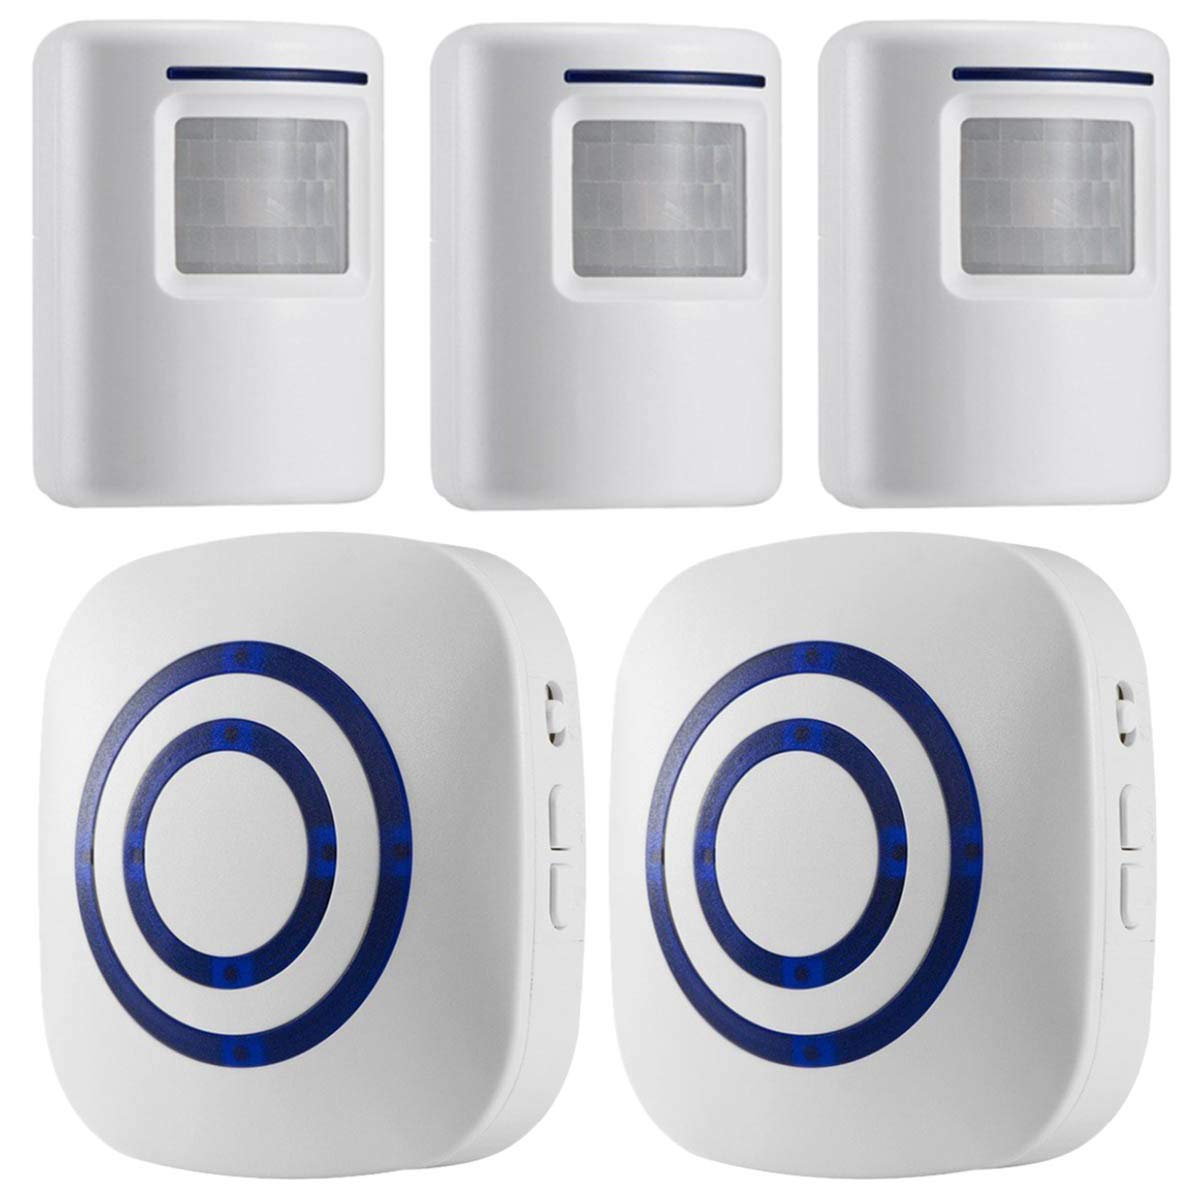 WJLING Motion Sensor Alarm, Wireless Driveway Alarm, Home Security Business Detect Alert with 3 Sensor and 2 Receiver,38 Chime Tunes - LED Indicators by WJLING